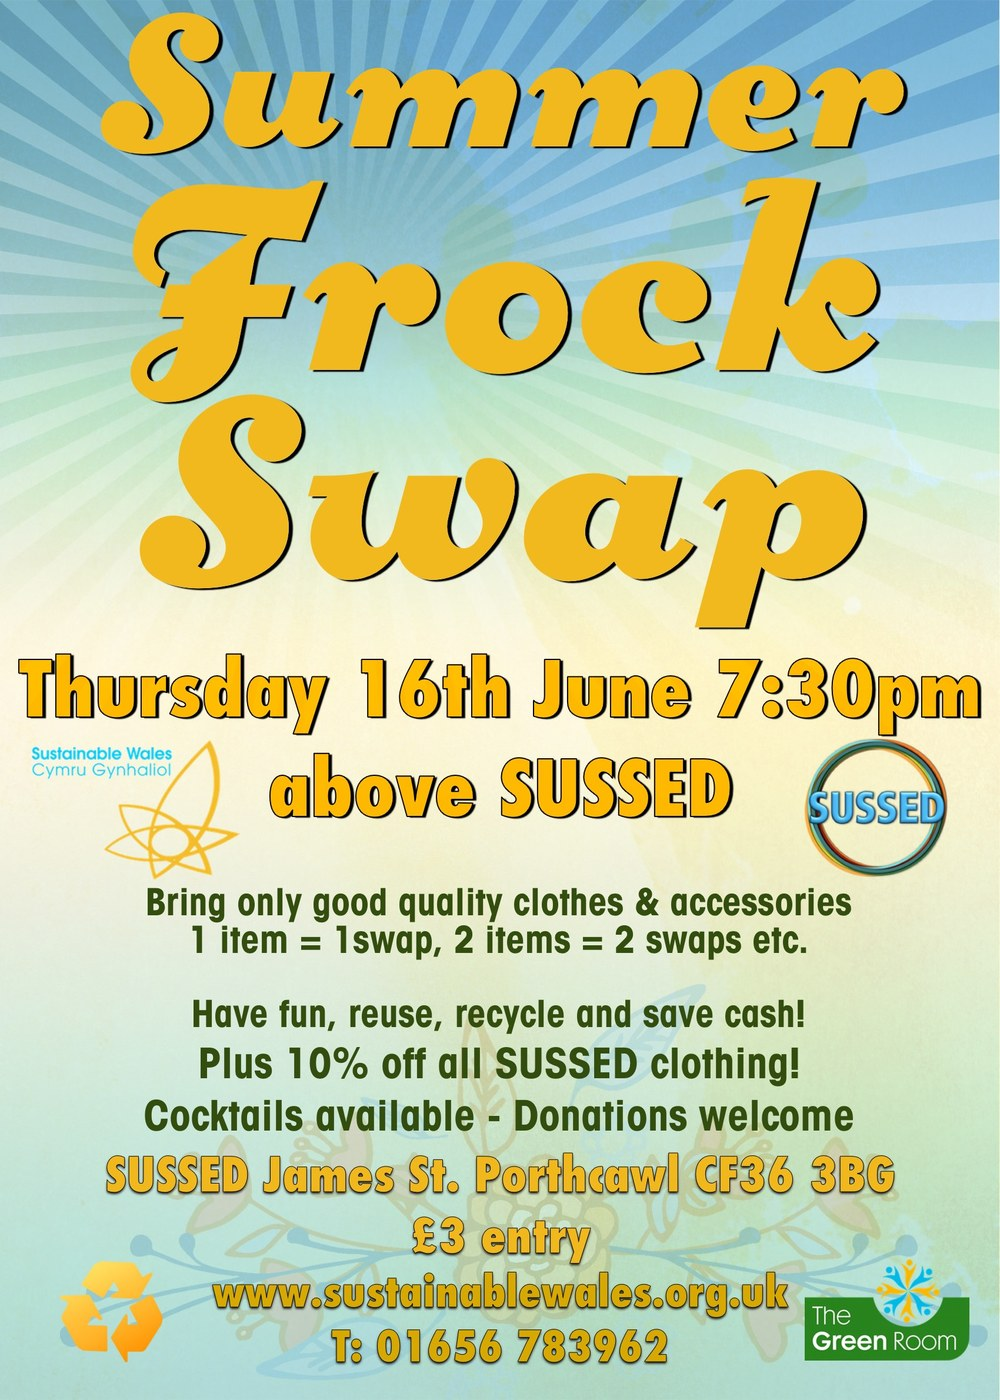 Frock Swap 16th June 2016, Porthcawl